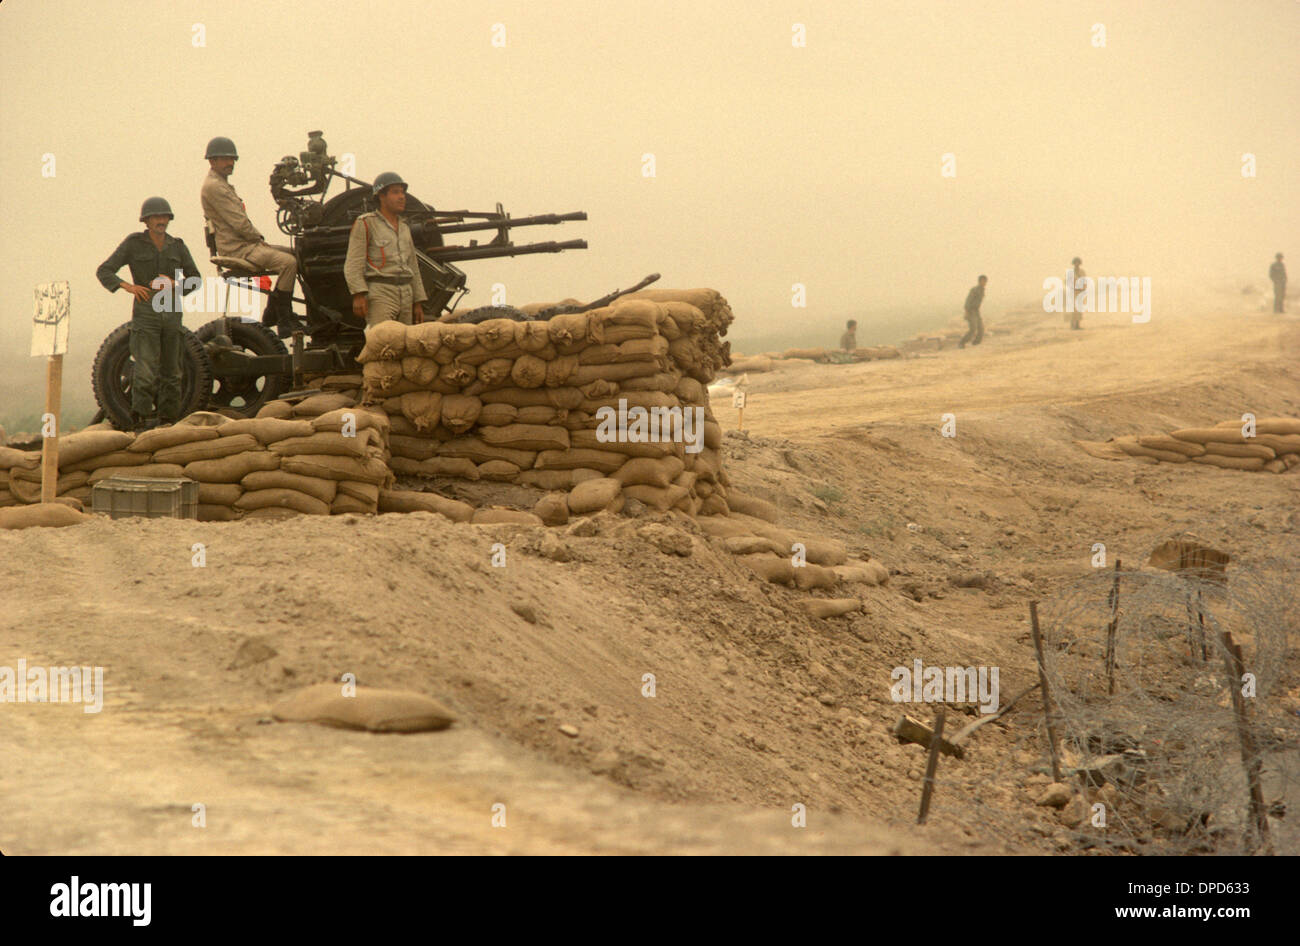 persian gulf war The persian gulf war was a fight that went by many names such as operation desert shield, operation desert storm, the iraq war, and more it was led by the united states against iraq after iraq invaded and captured kuwait.